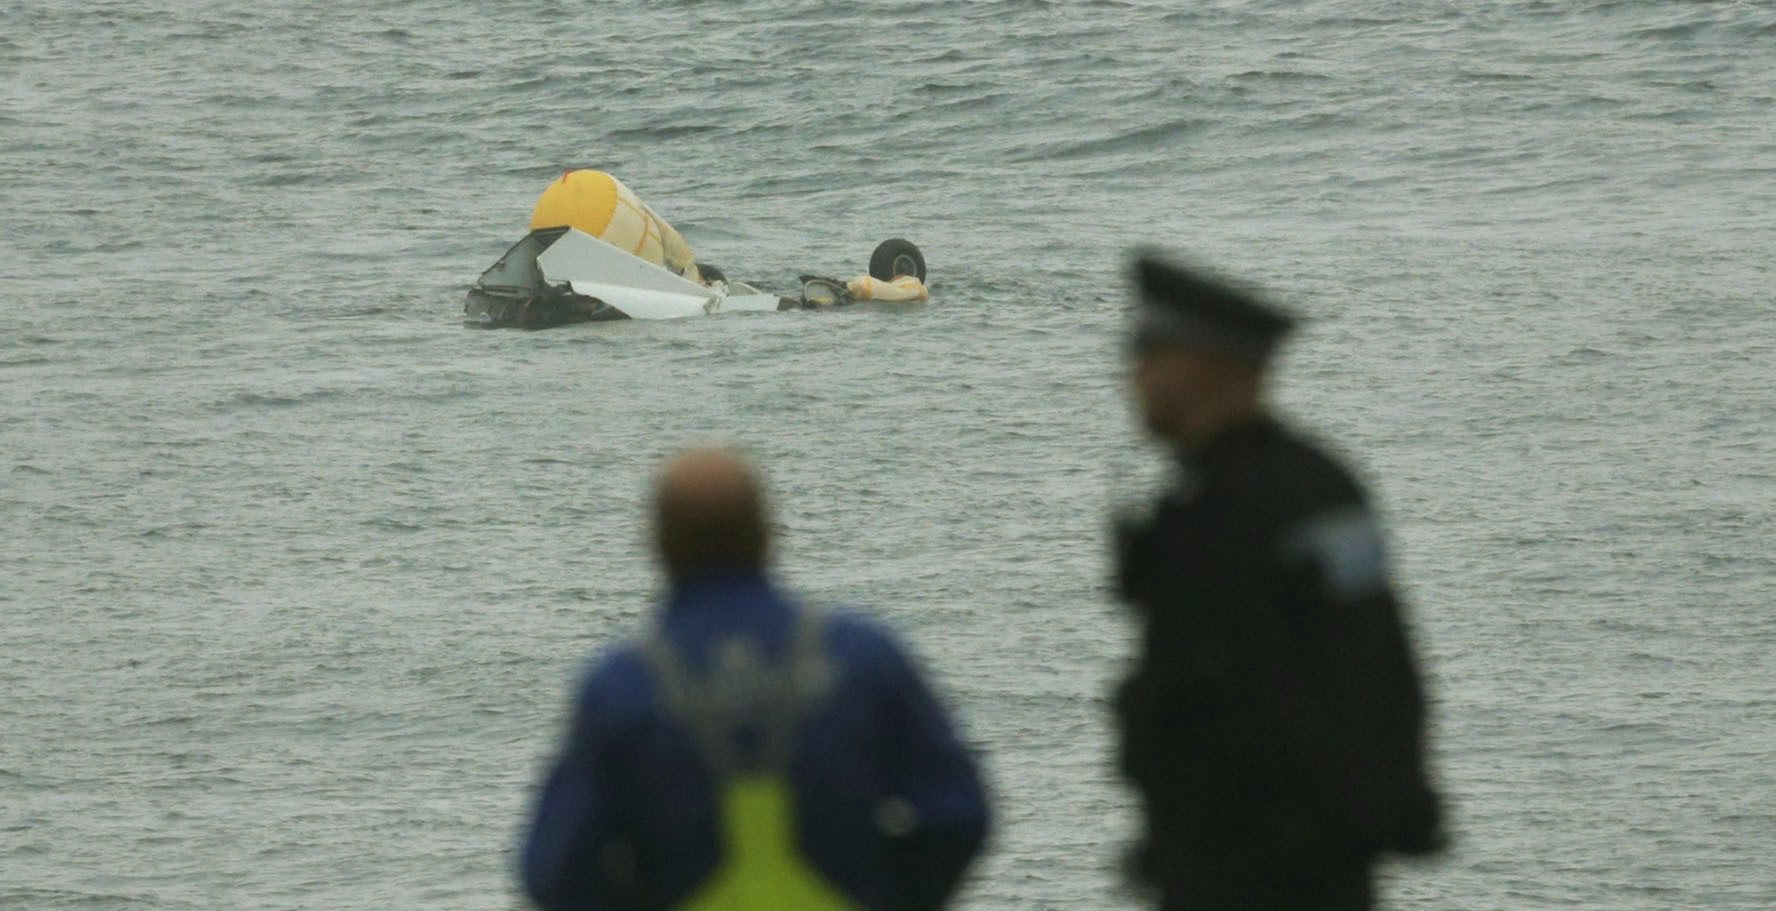 The wreckage of the Super Puma L2 helicopter which went down in the North Sea with the loss of four lives. Photograph: PA